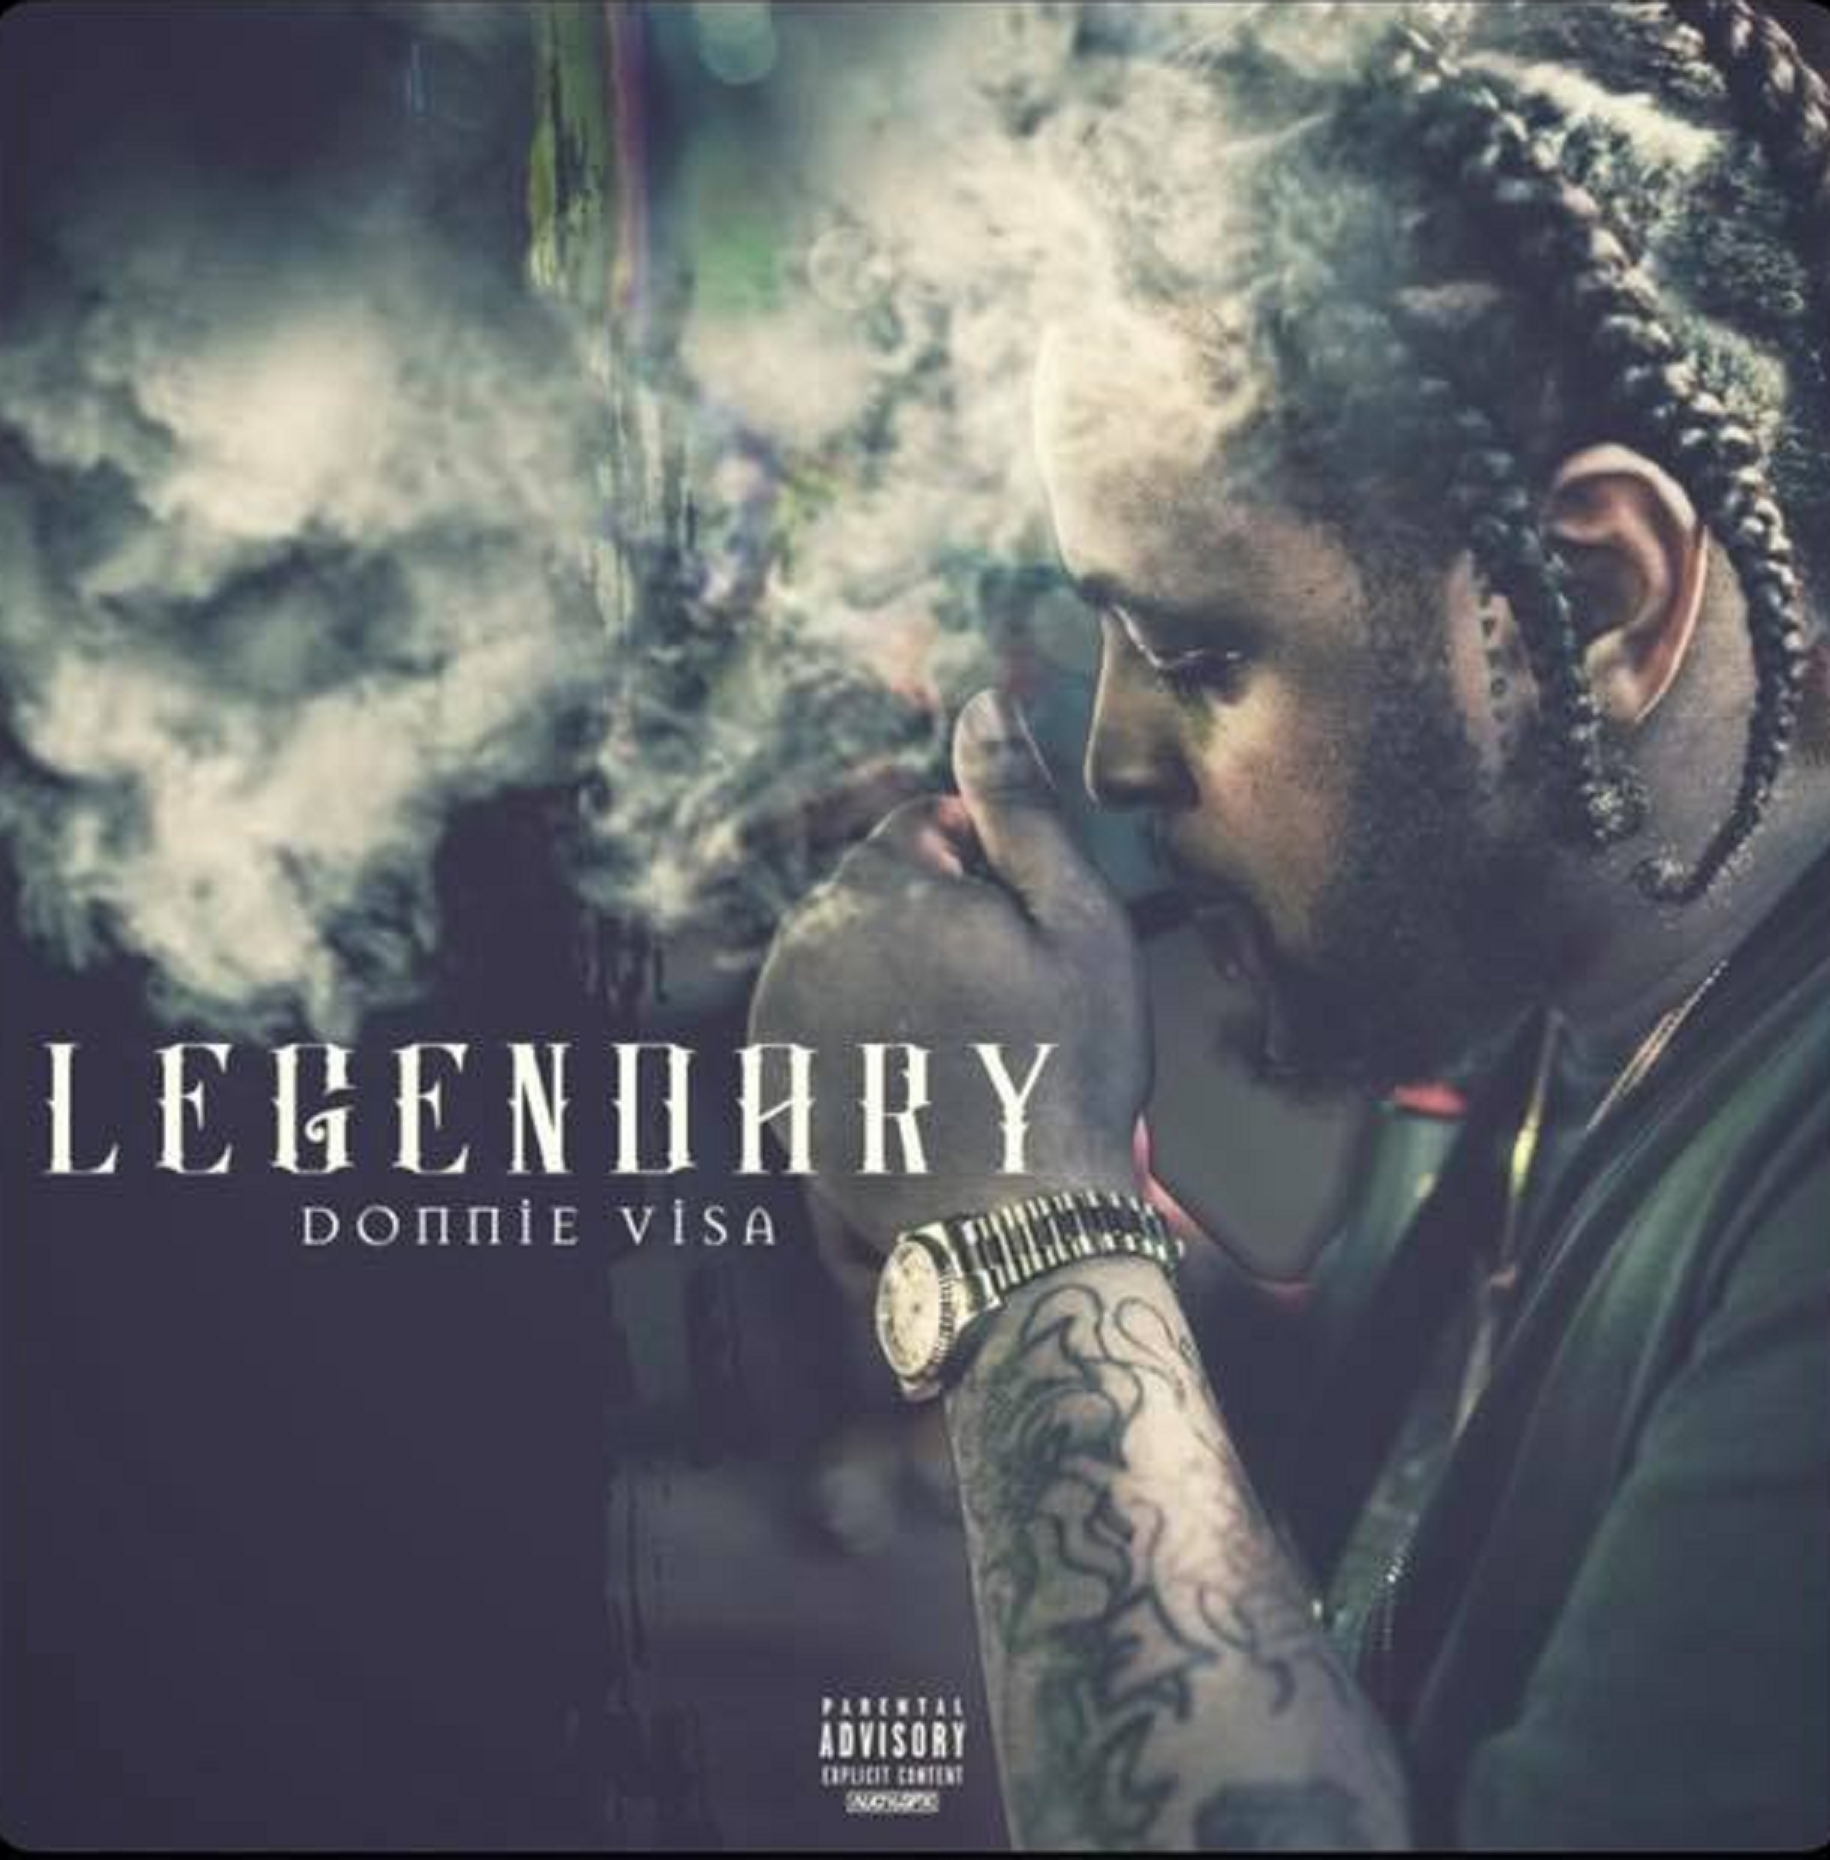 """Read more about the article American Rapper Donnie Visa Talks About His Latest Single """"Legendary"""""""